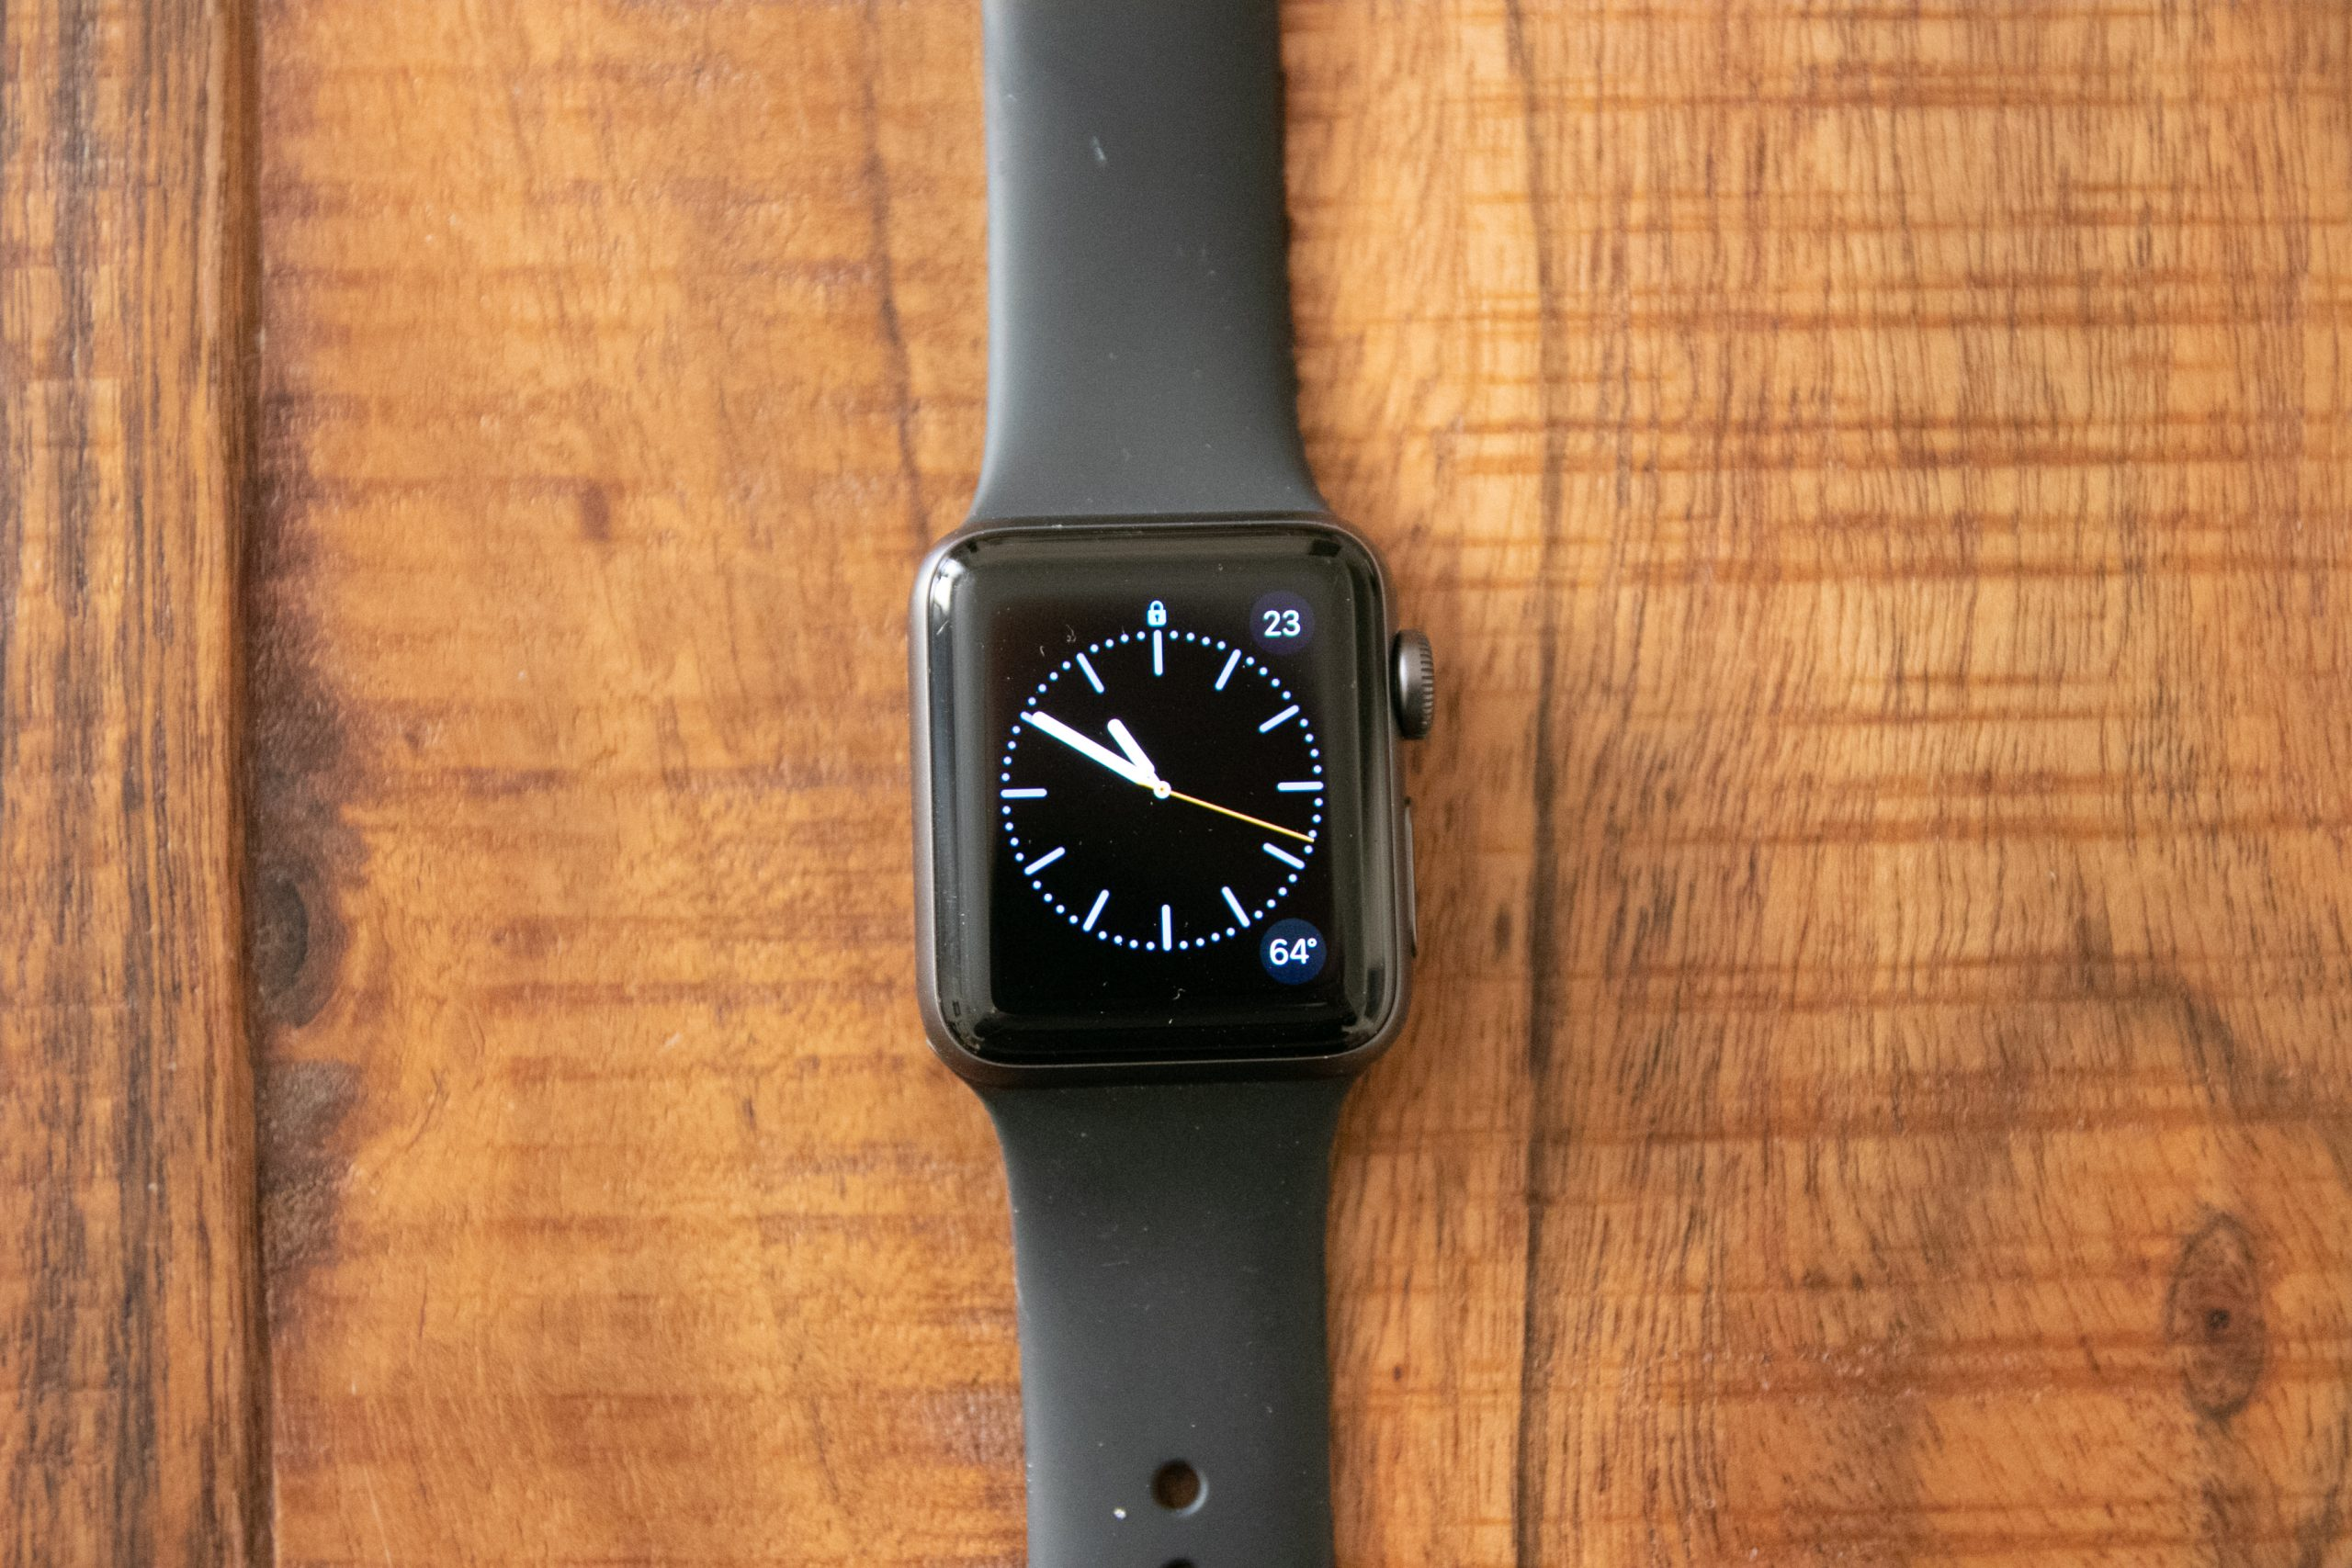 Dark Strapped Smart Watch On Wooden Surface